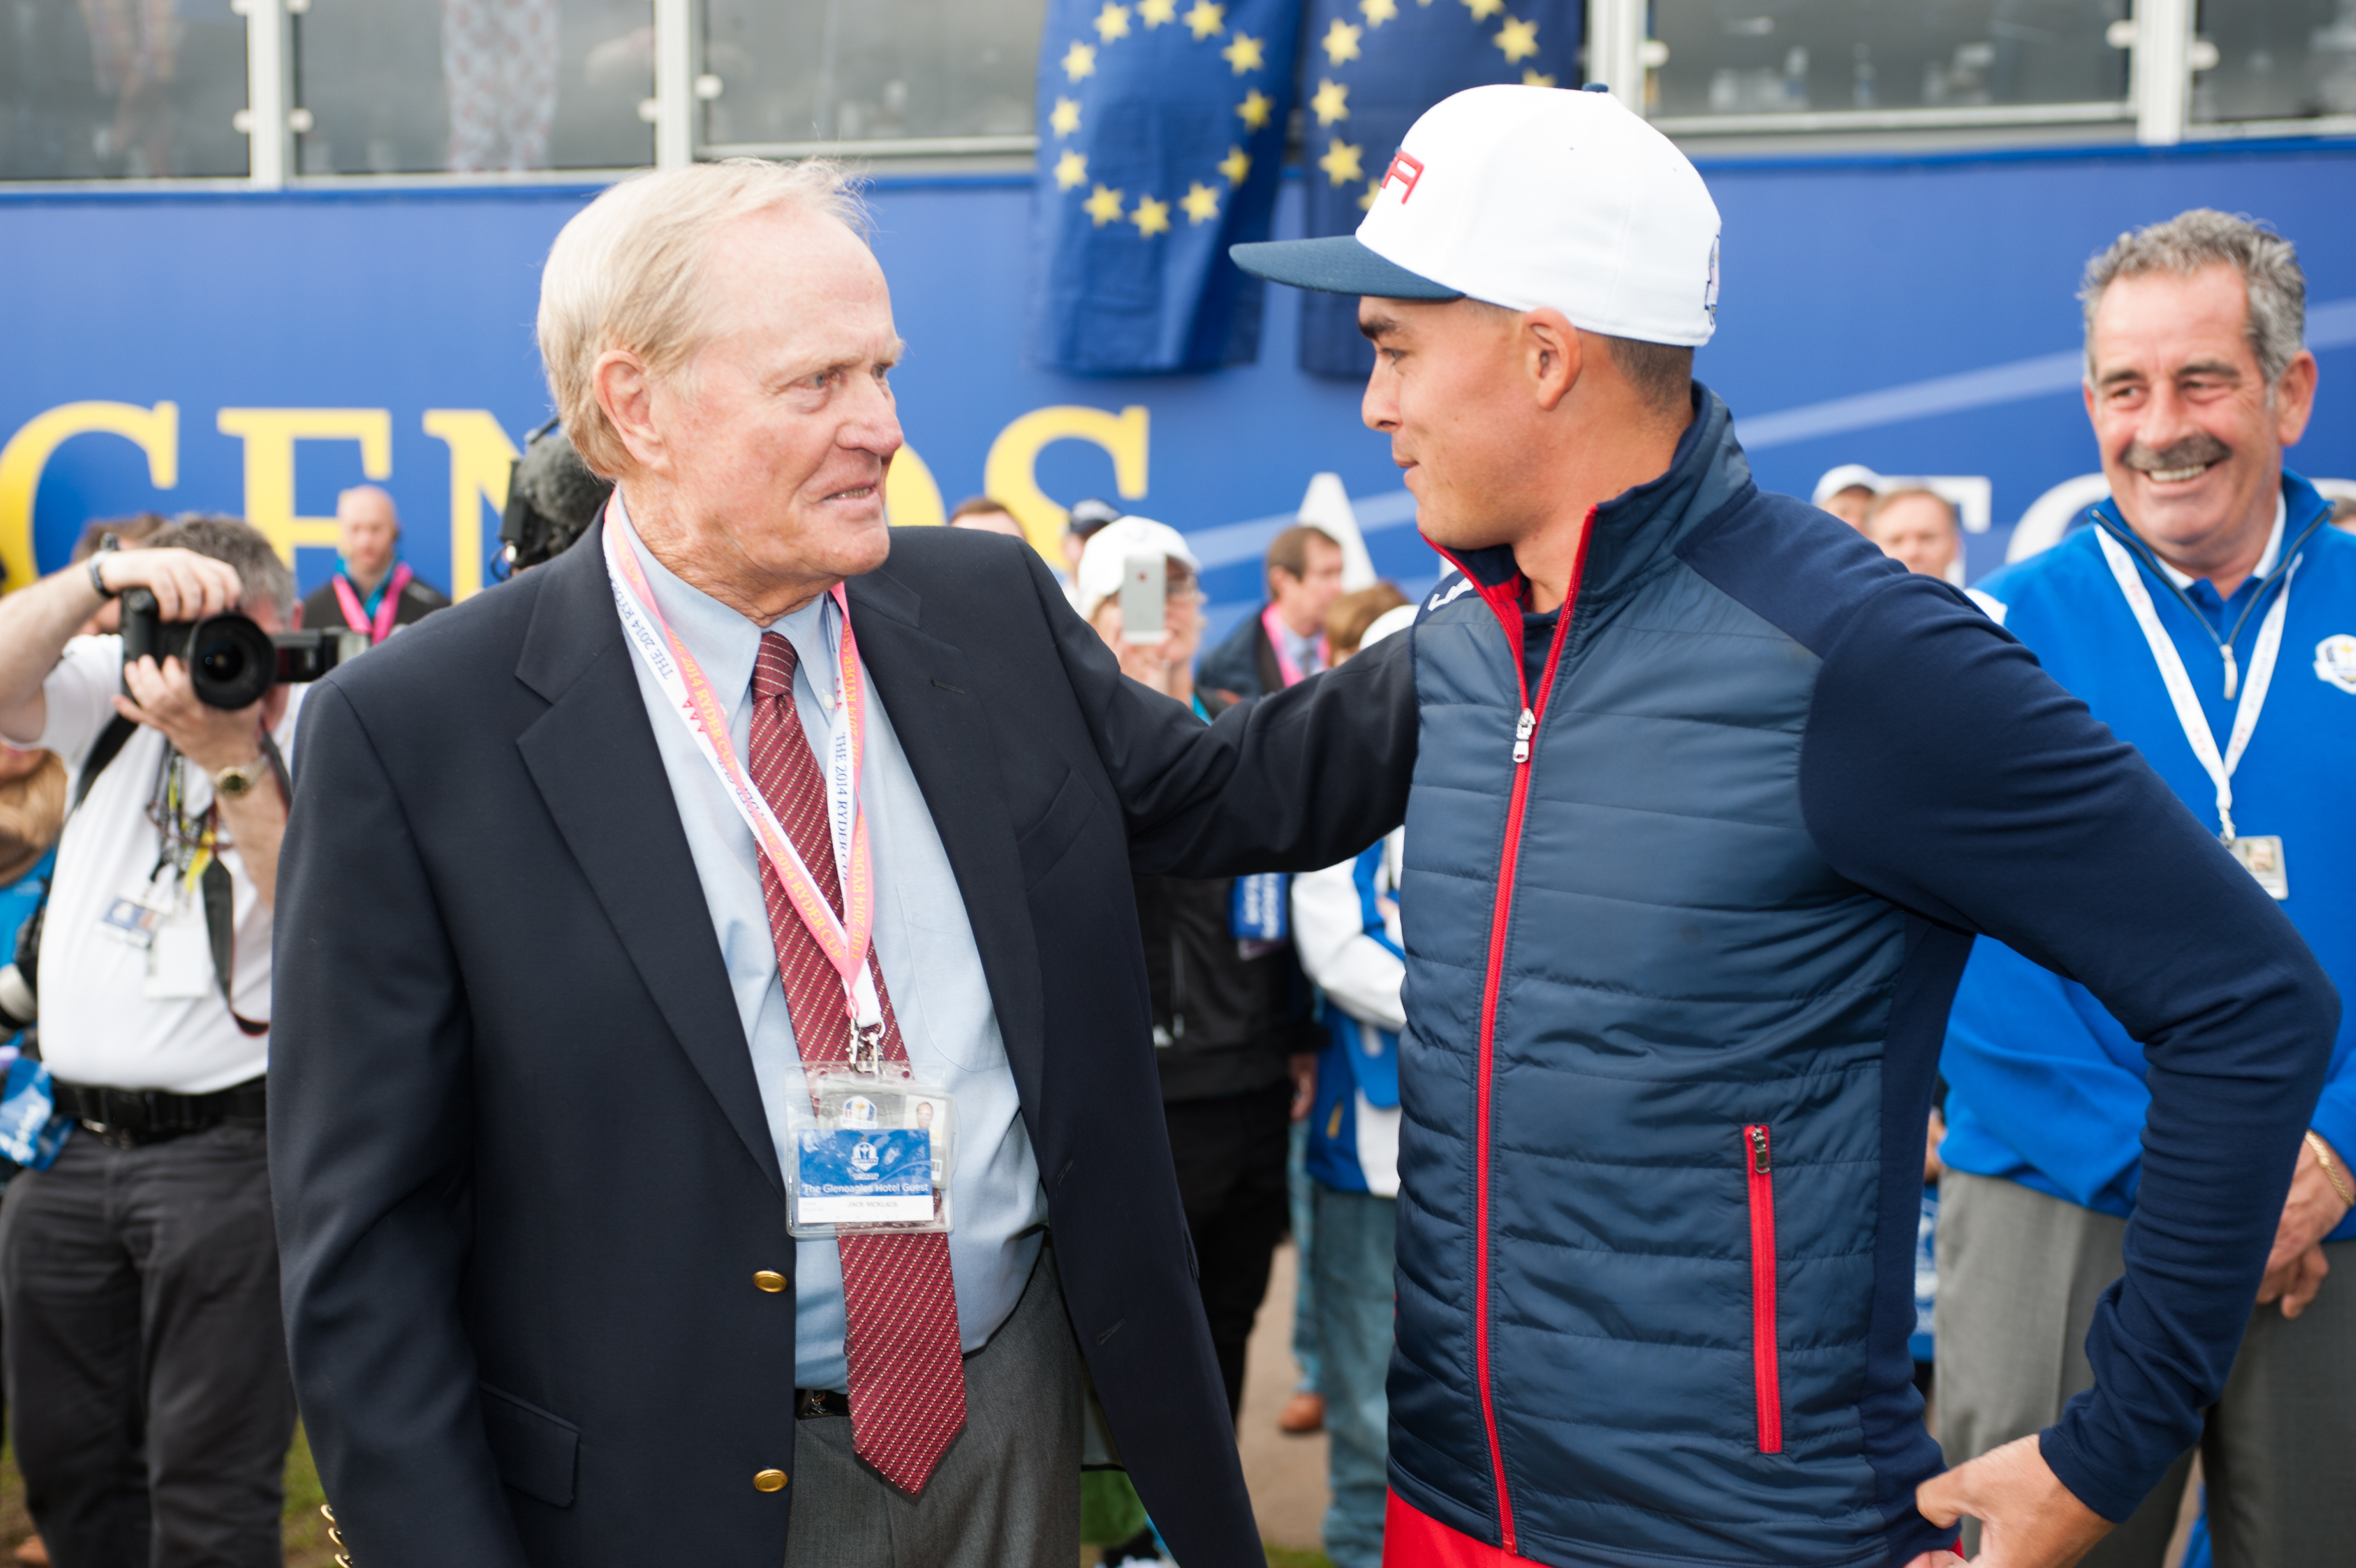 ack Nicklaus speaks with Rickie Fowler of the United States on the first tee during the singles matches for the 40th Ryder Cup at Gleneagles.